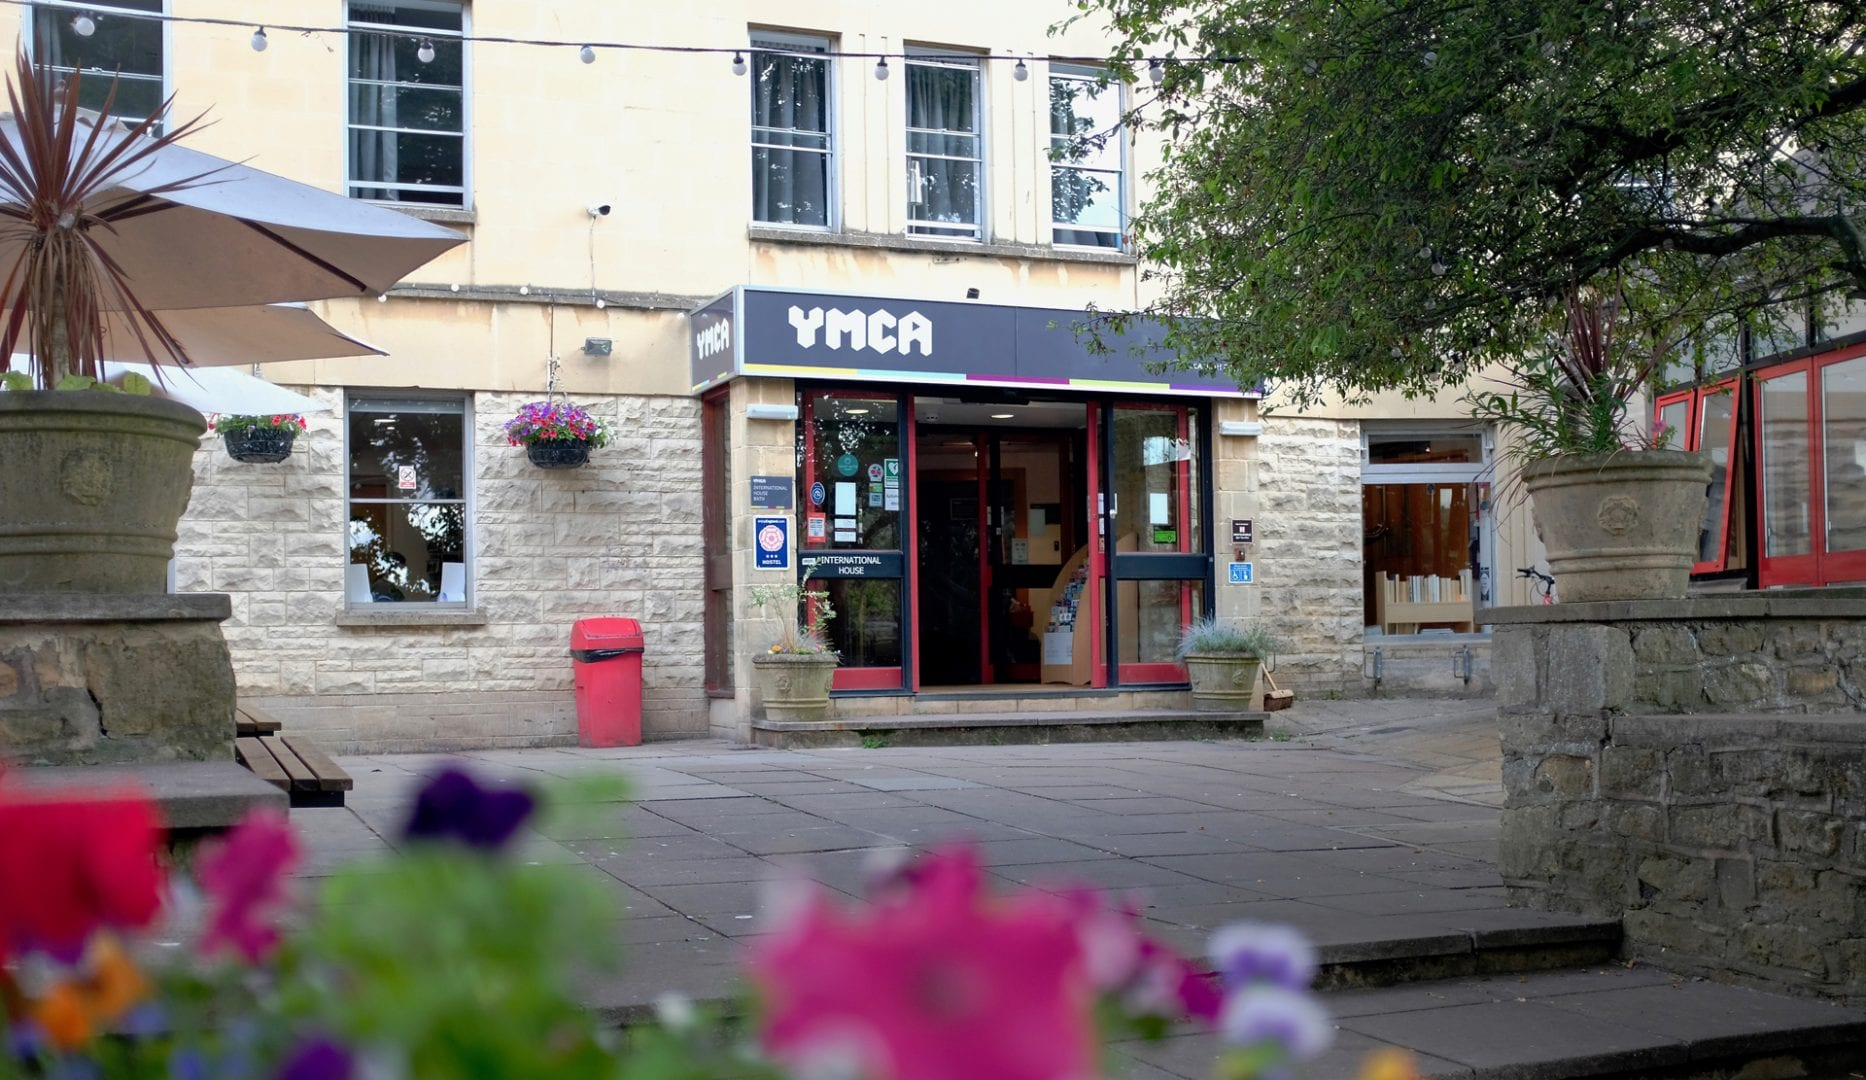 Bath YMCA large backpackers hostel in Bath